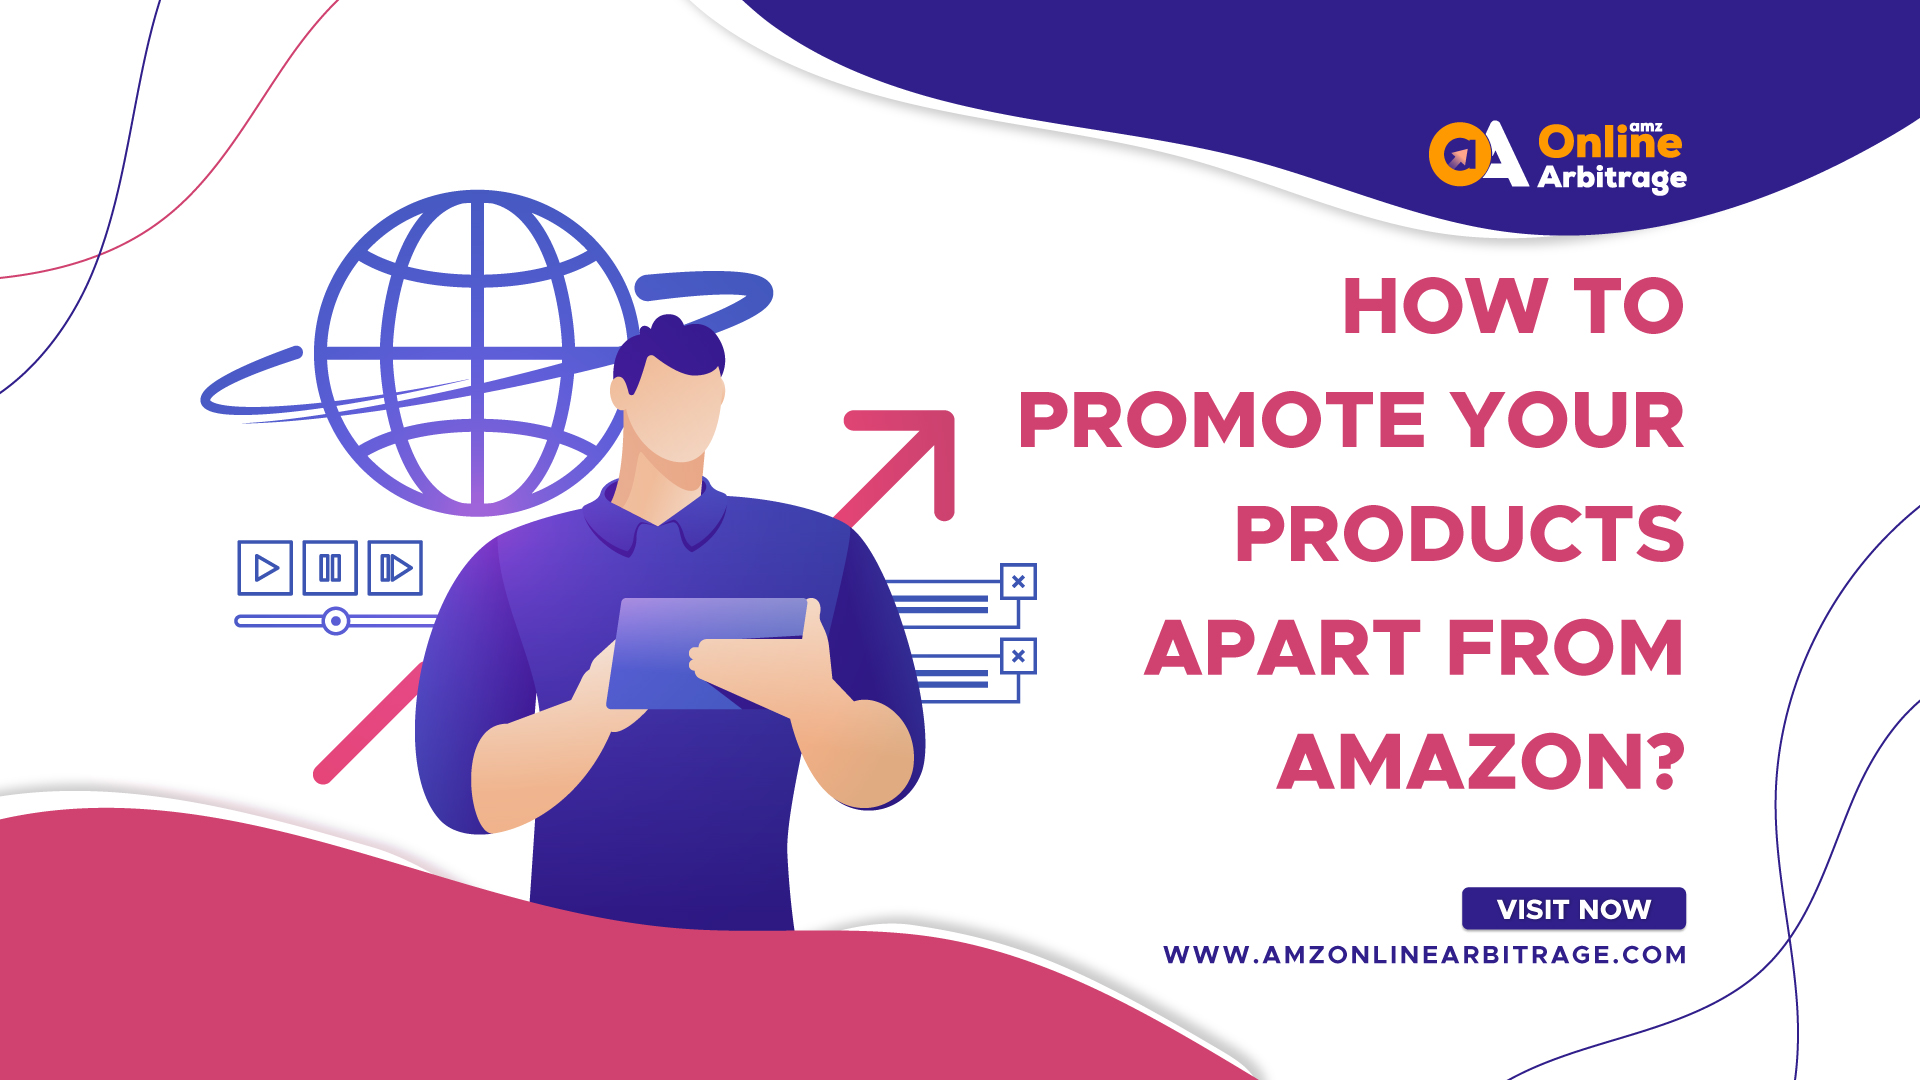 HOW TO PROMOTE YOUR PRODUCTS APART FROM AMAZON?